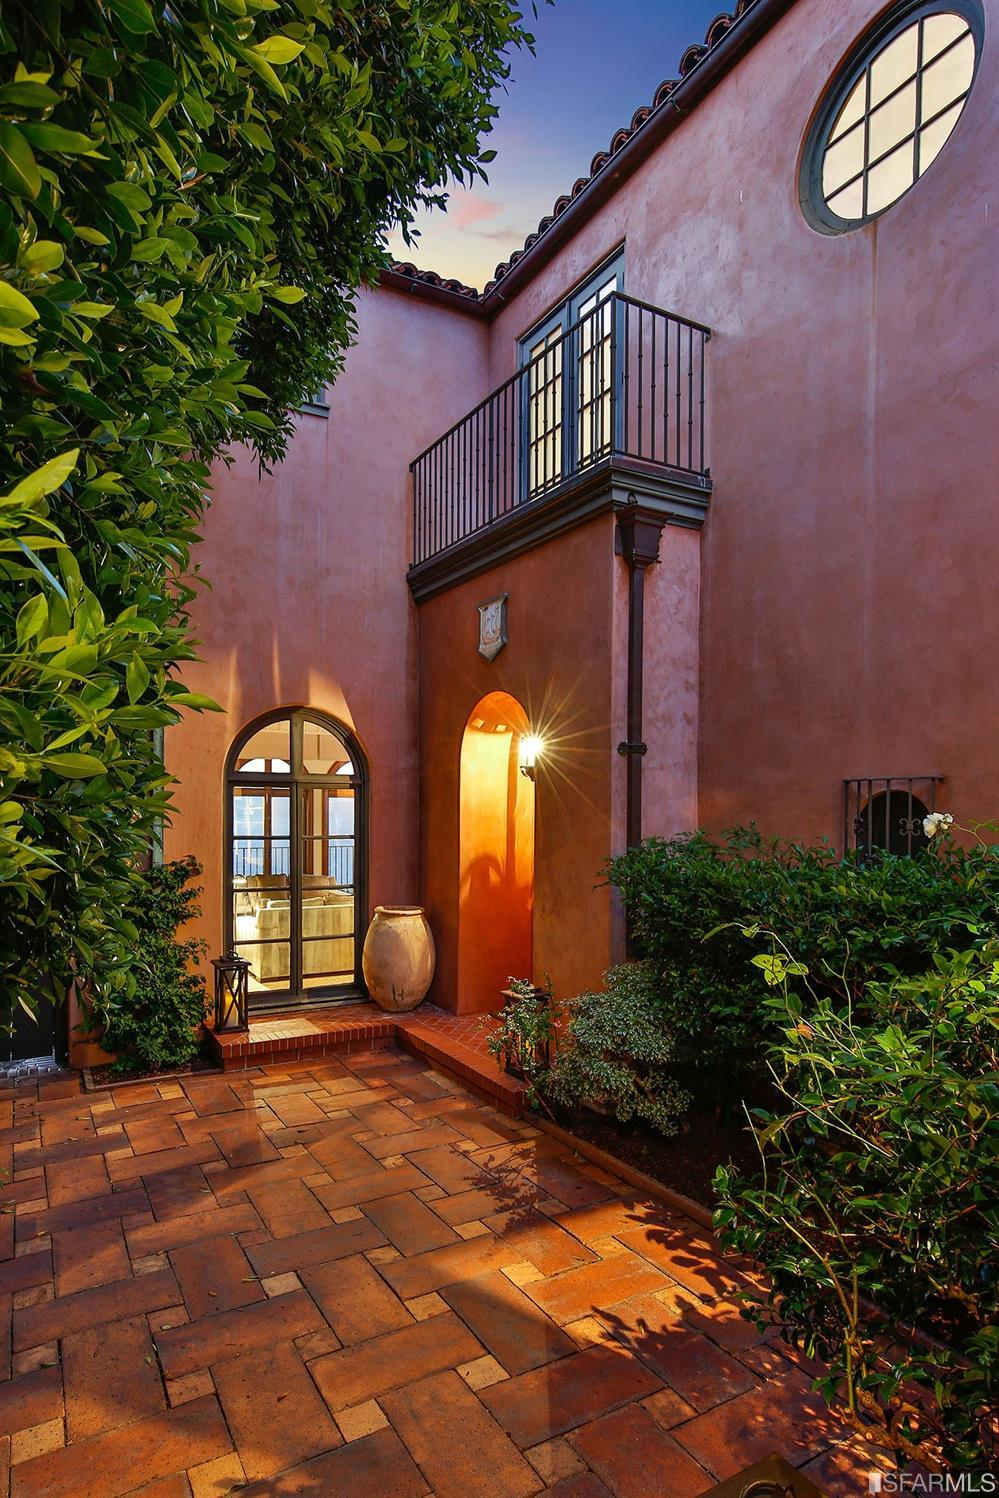 This stunning entry courtyard gives guest that first glimpse of the views from this remarkable home.